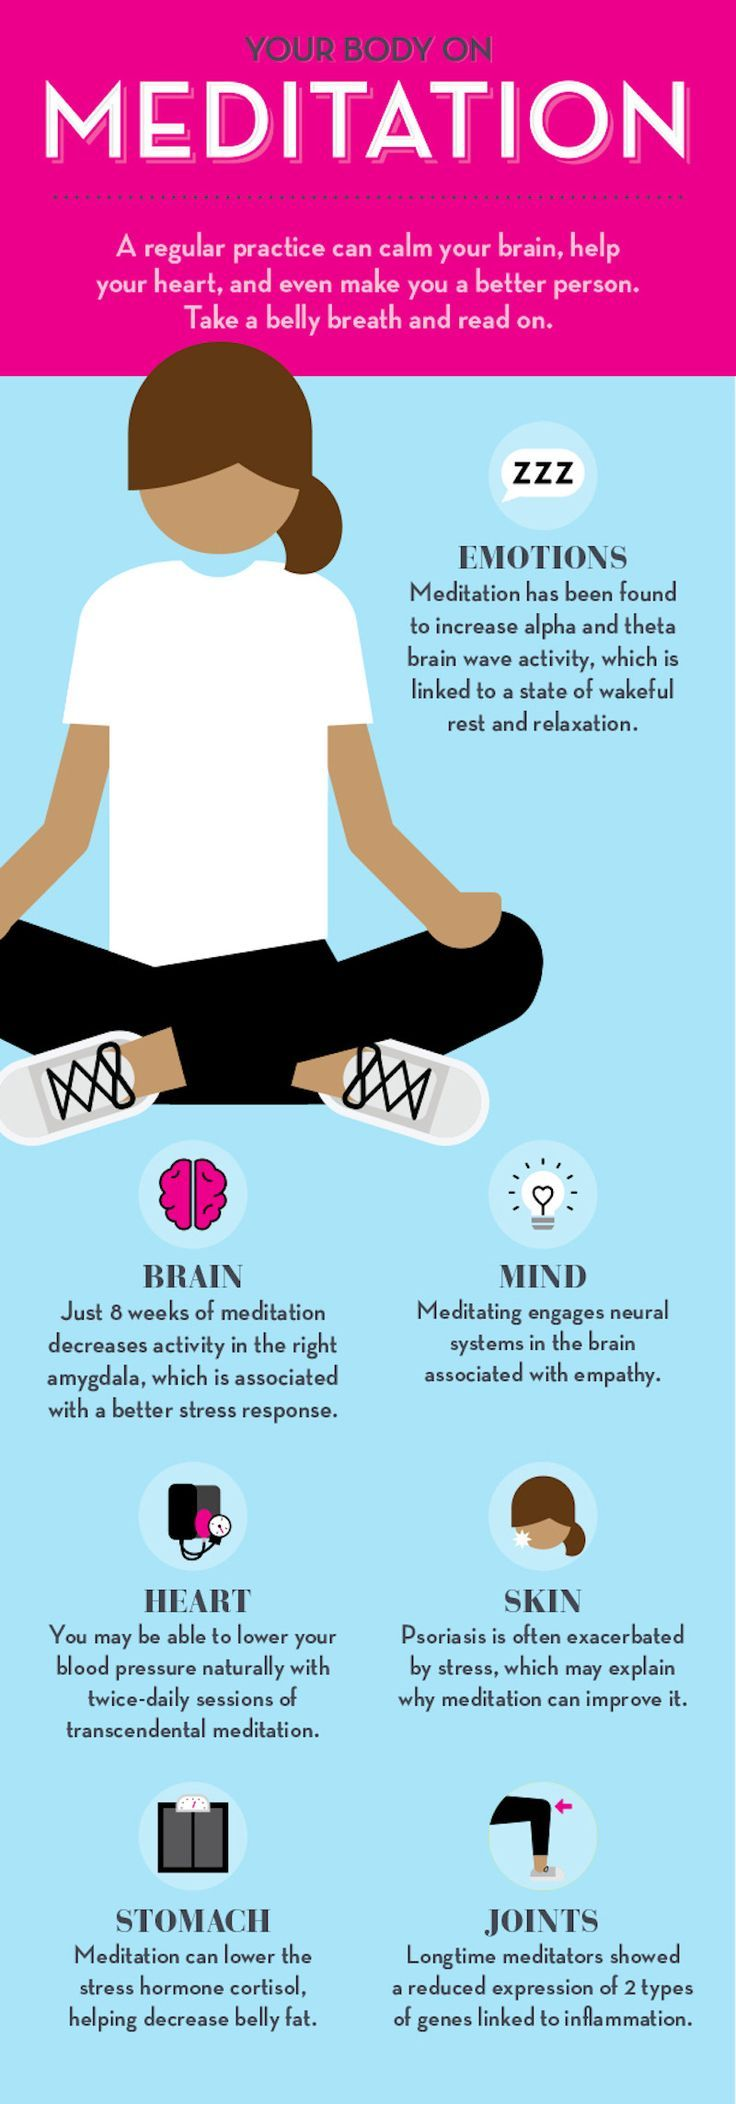 One of the best—and most easily available—ways we can become healthier and happier is through mindfulness and meditation. Here are some of the many benefits of meditation. Start with just 5 minutes a day! #ThriveOCourse